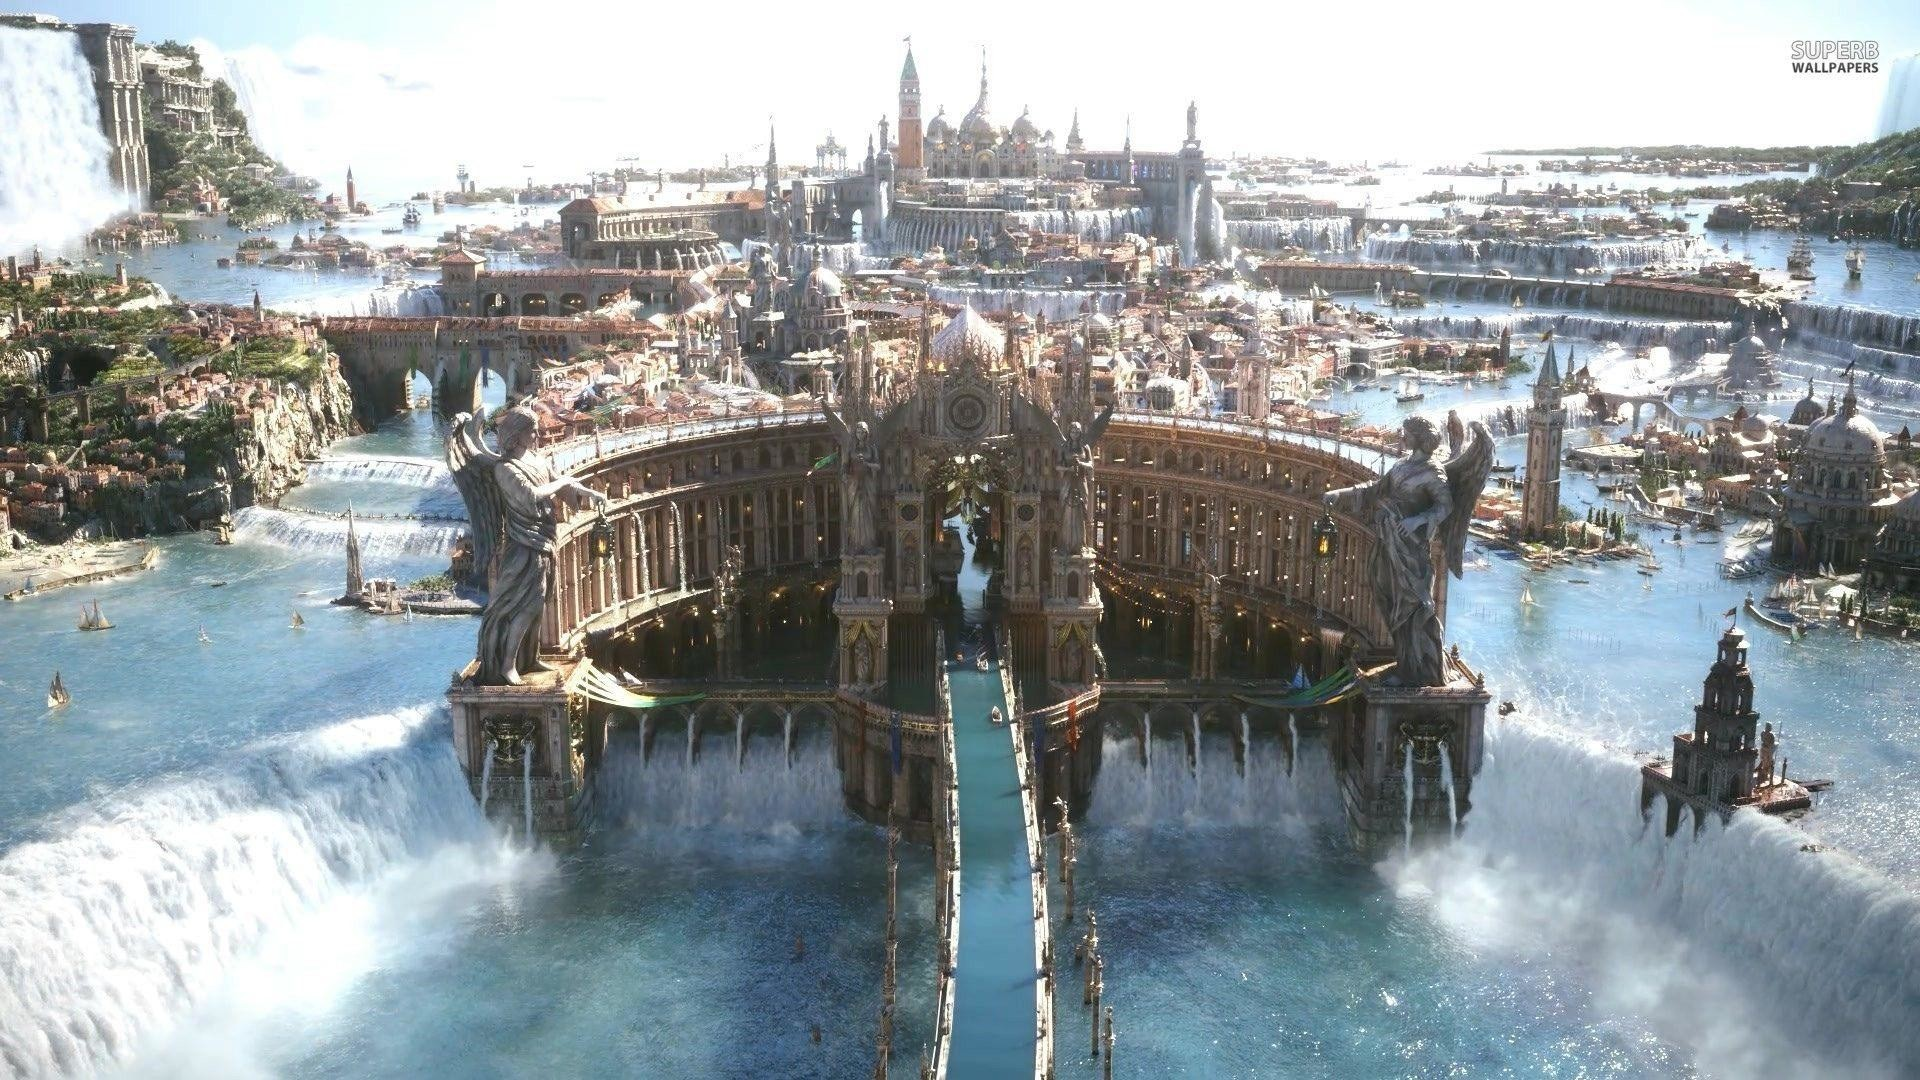 89 Final Fantasy XV HD Wallpapers   Backgrounds – Wallpaper Abyss